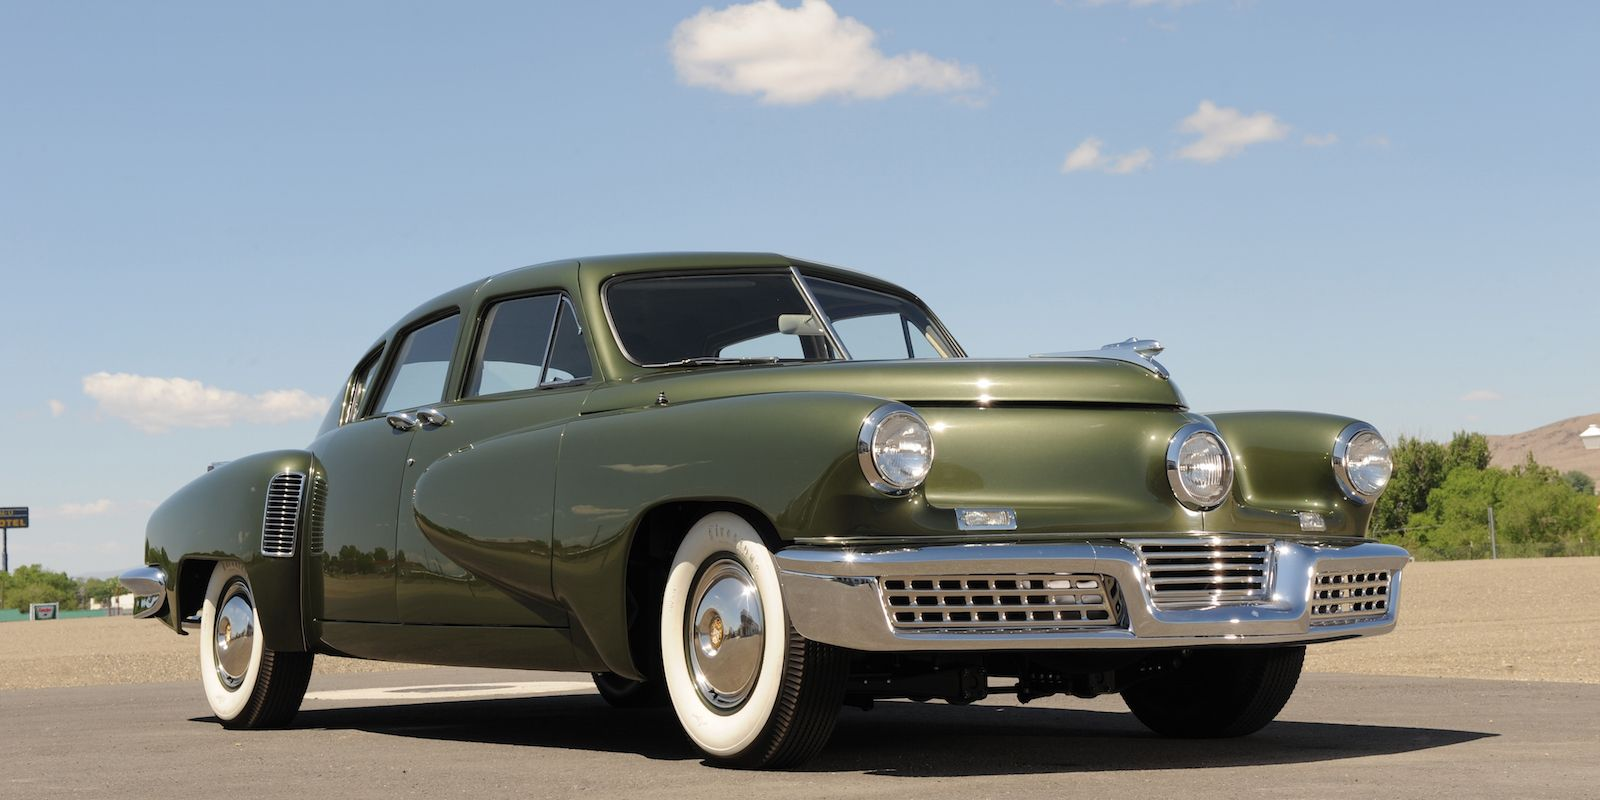 "<p>Preston Tucker's first and only car saw many innovations that took years for other manufactures to adopt. Unfortunately, <a href=""http://quizcards.info/car-culture/a29351/what-tesla-needs-to-learn-from-tucker/"" target=""_blank"">production was stopped</a> after only 51 cars were made due to an SEC investigation–likely egged on by Detroit carmakers threatened by upstart Tucker's promise.</p>"